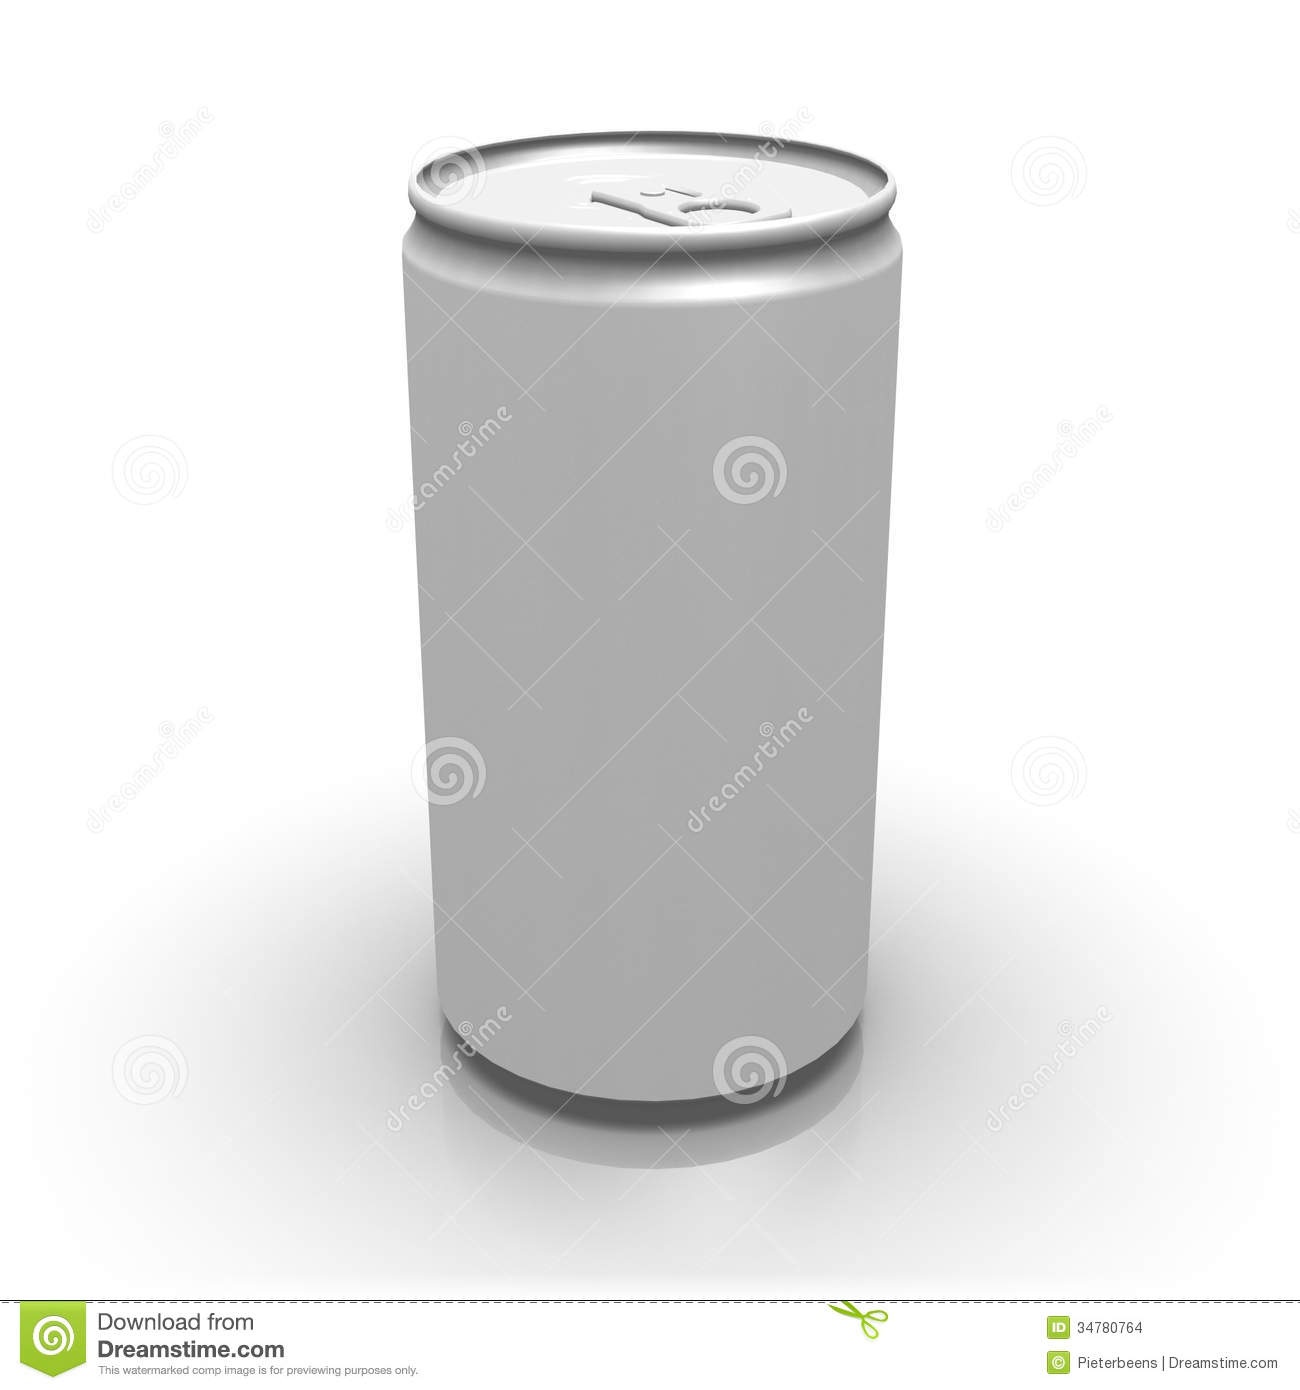 3d rendering of soda can on white background stock illustration